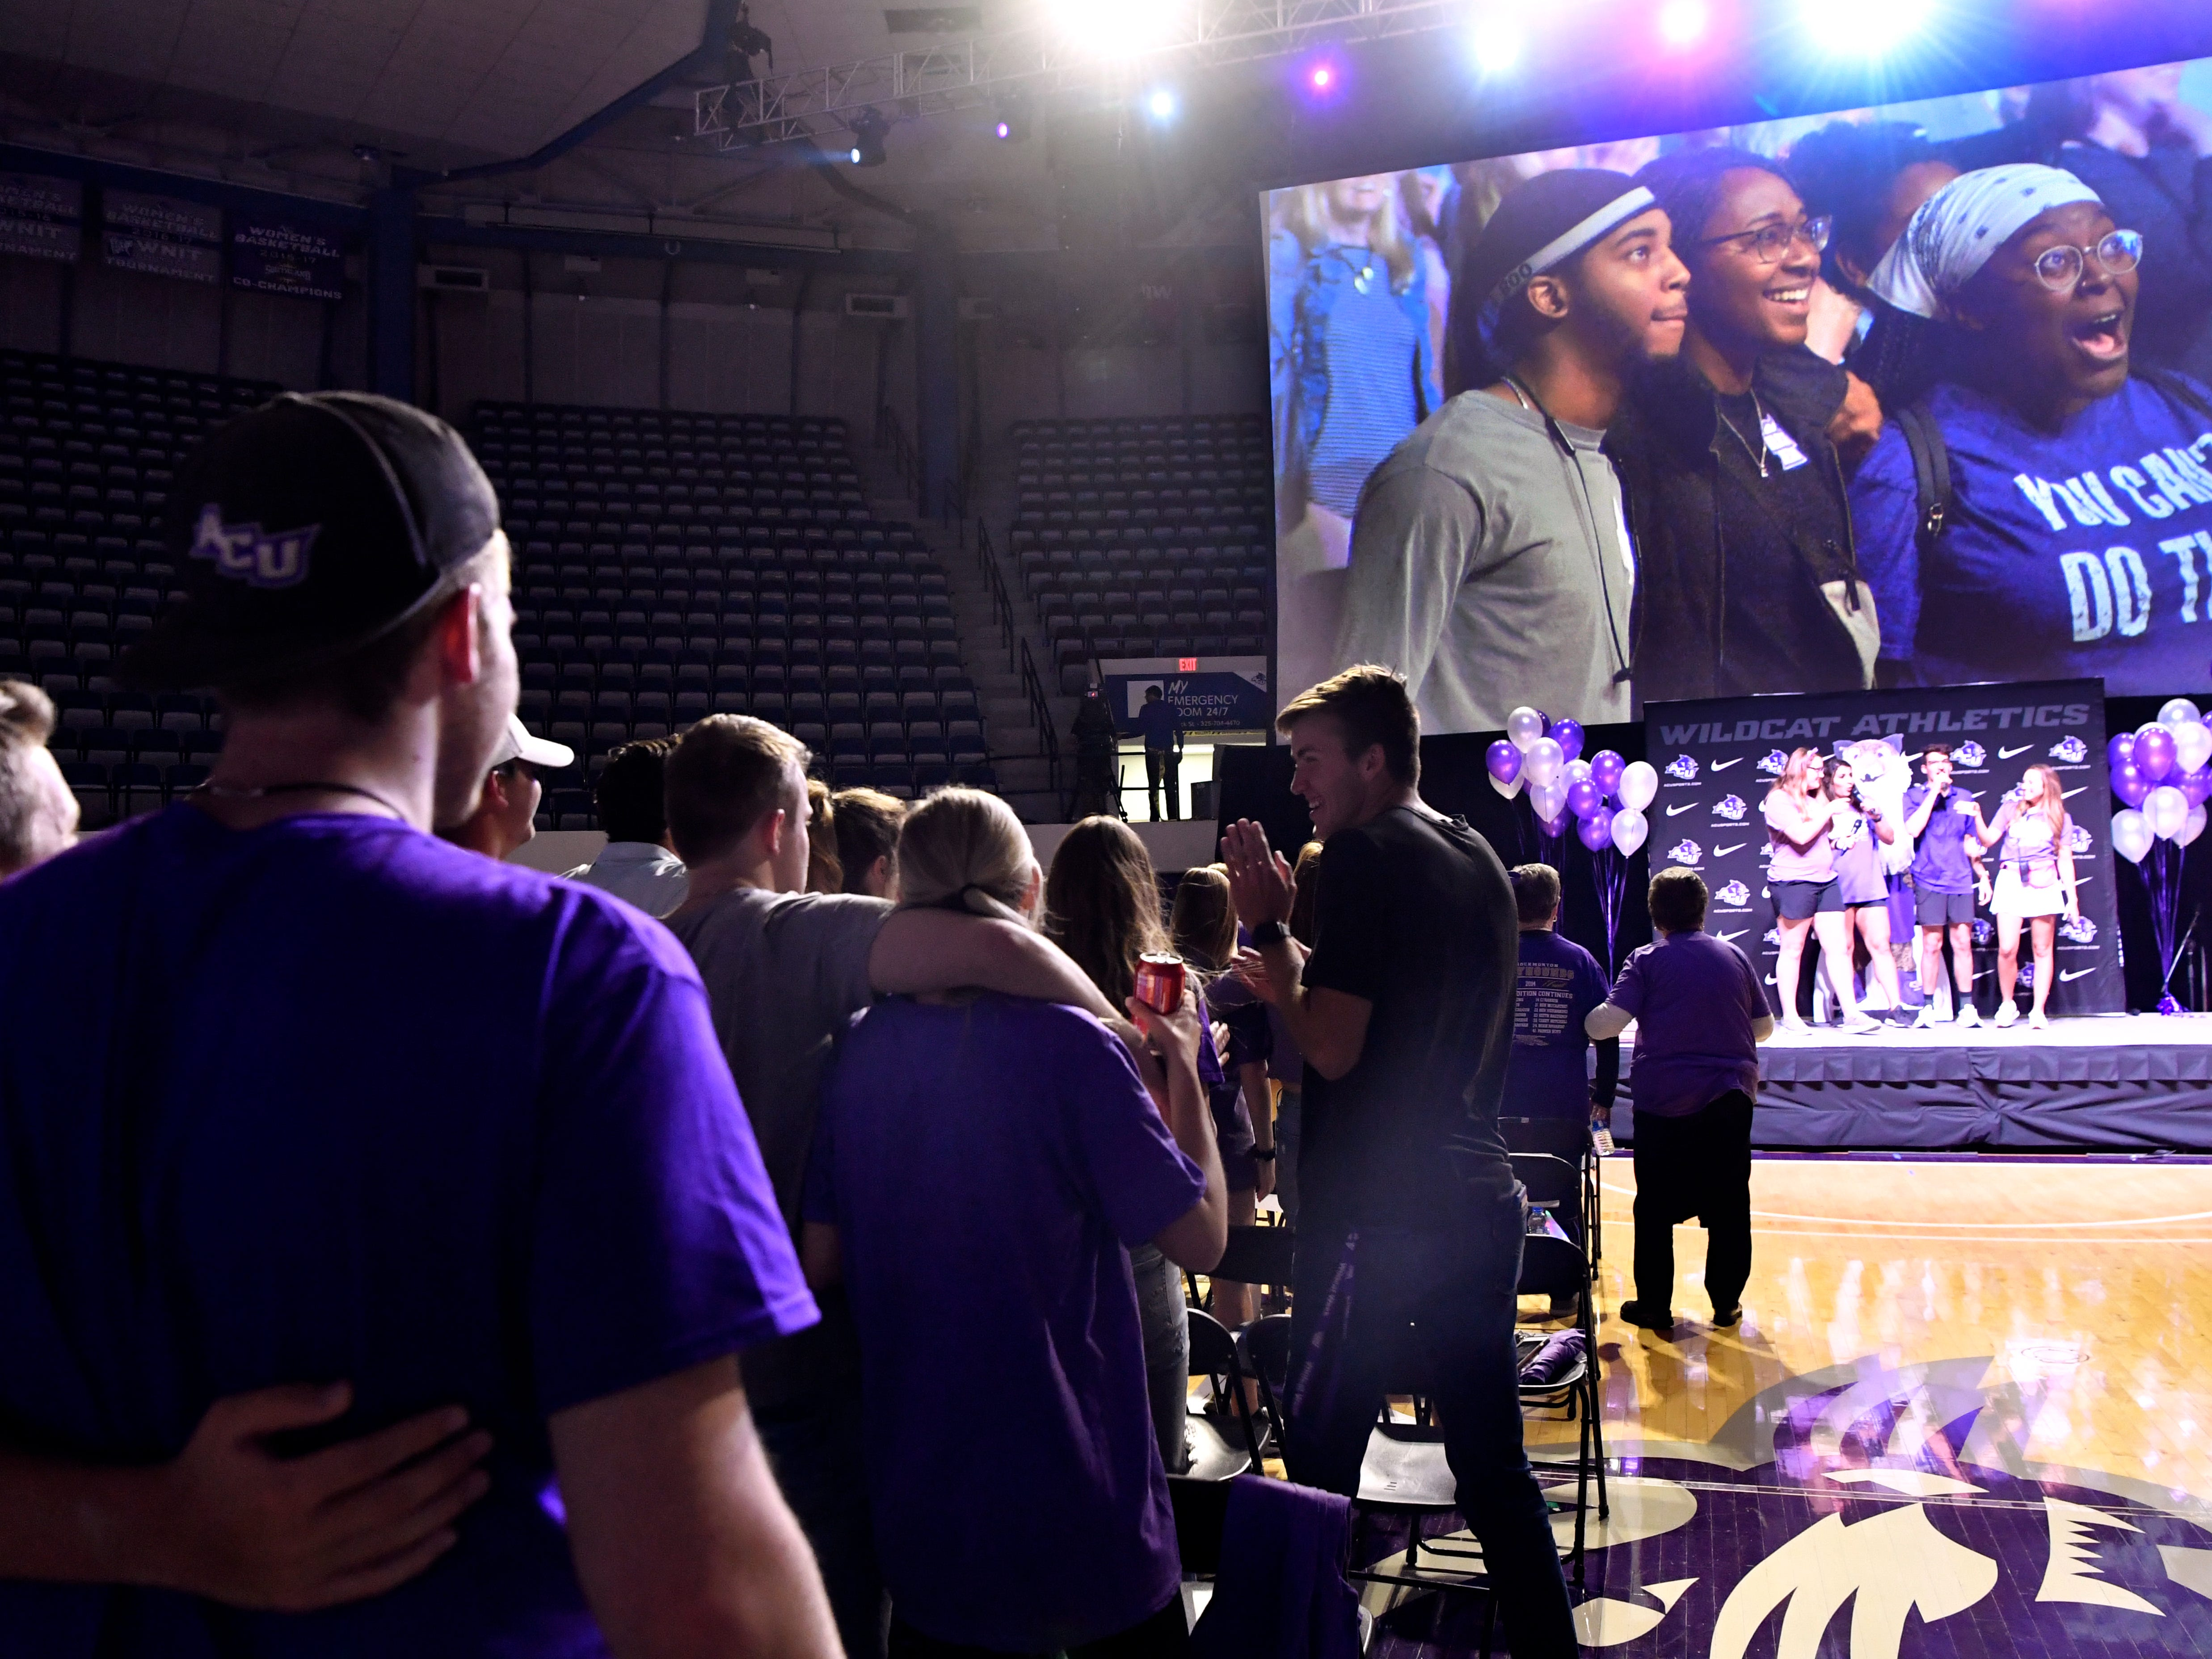 Students and fans sing the school song in Abilene Christian University's Moody Coliseum at the conclusion of Thursday's watch party March 21, 2019. The ACU men took on basketball powerhouse University of Kentucky in their first-ever trip to the NCAA Tournament. Final score was 79-44, Kentucky.